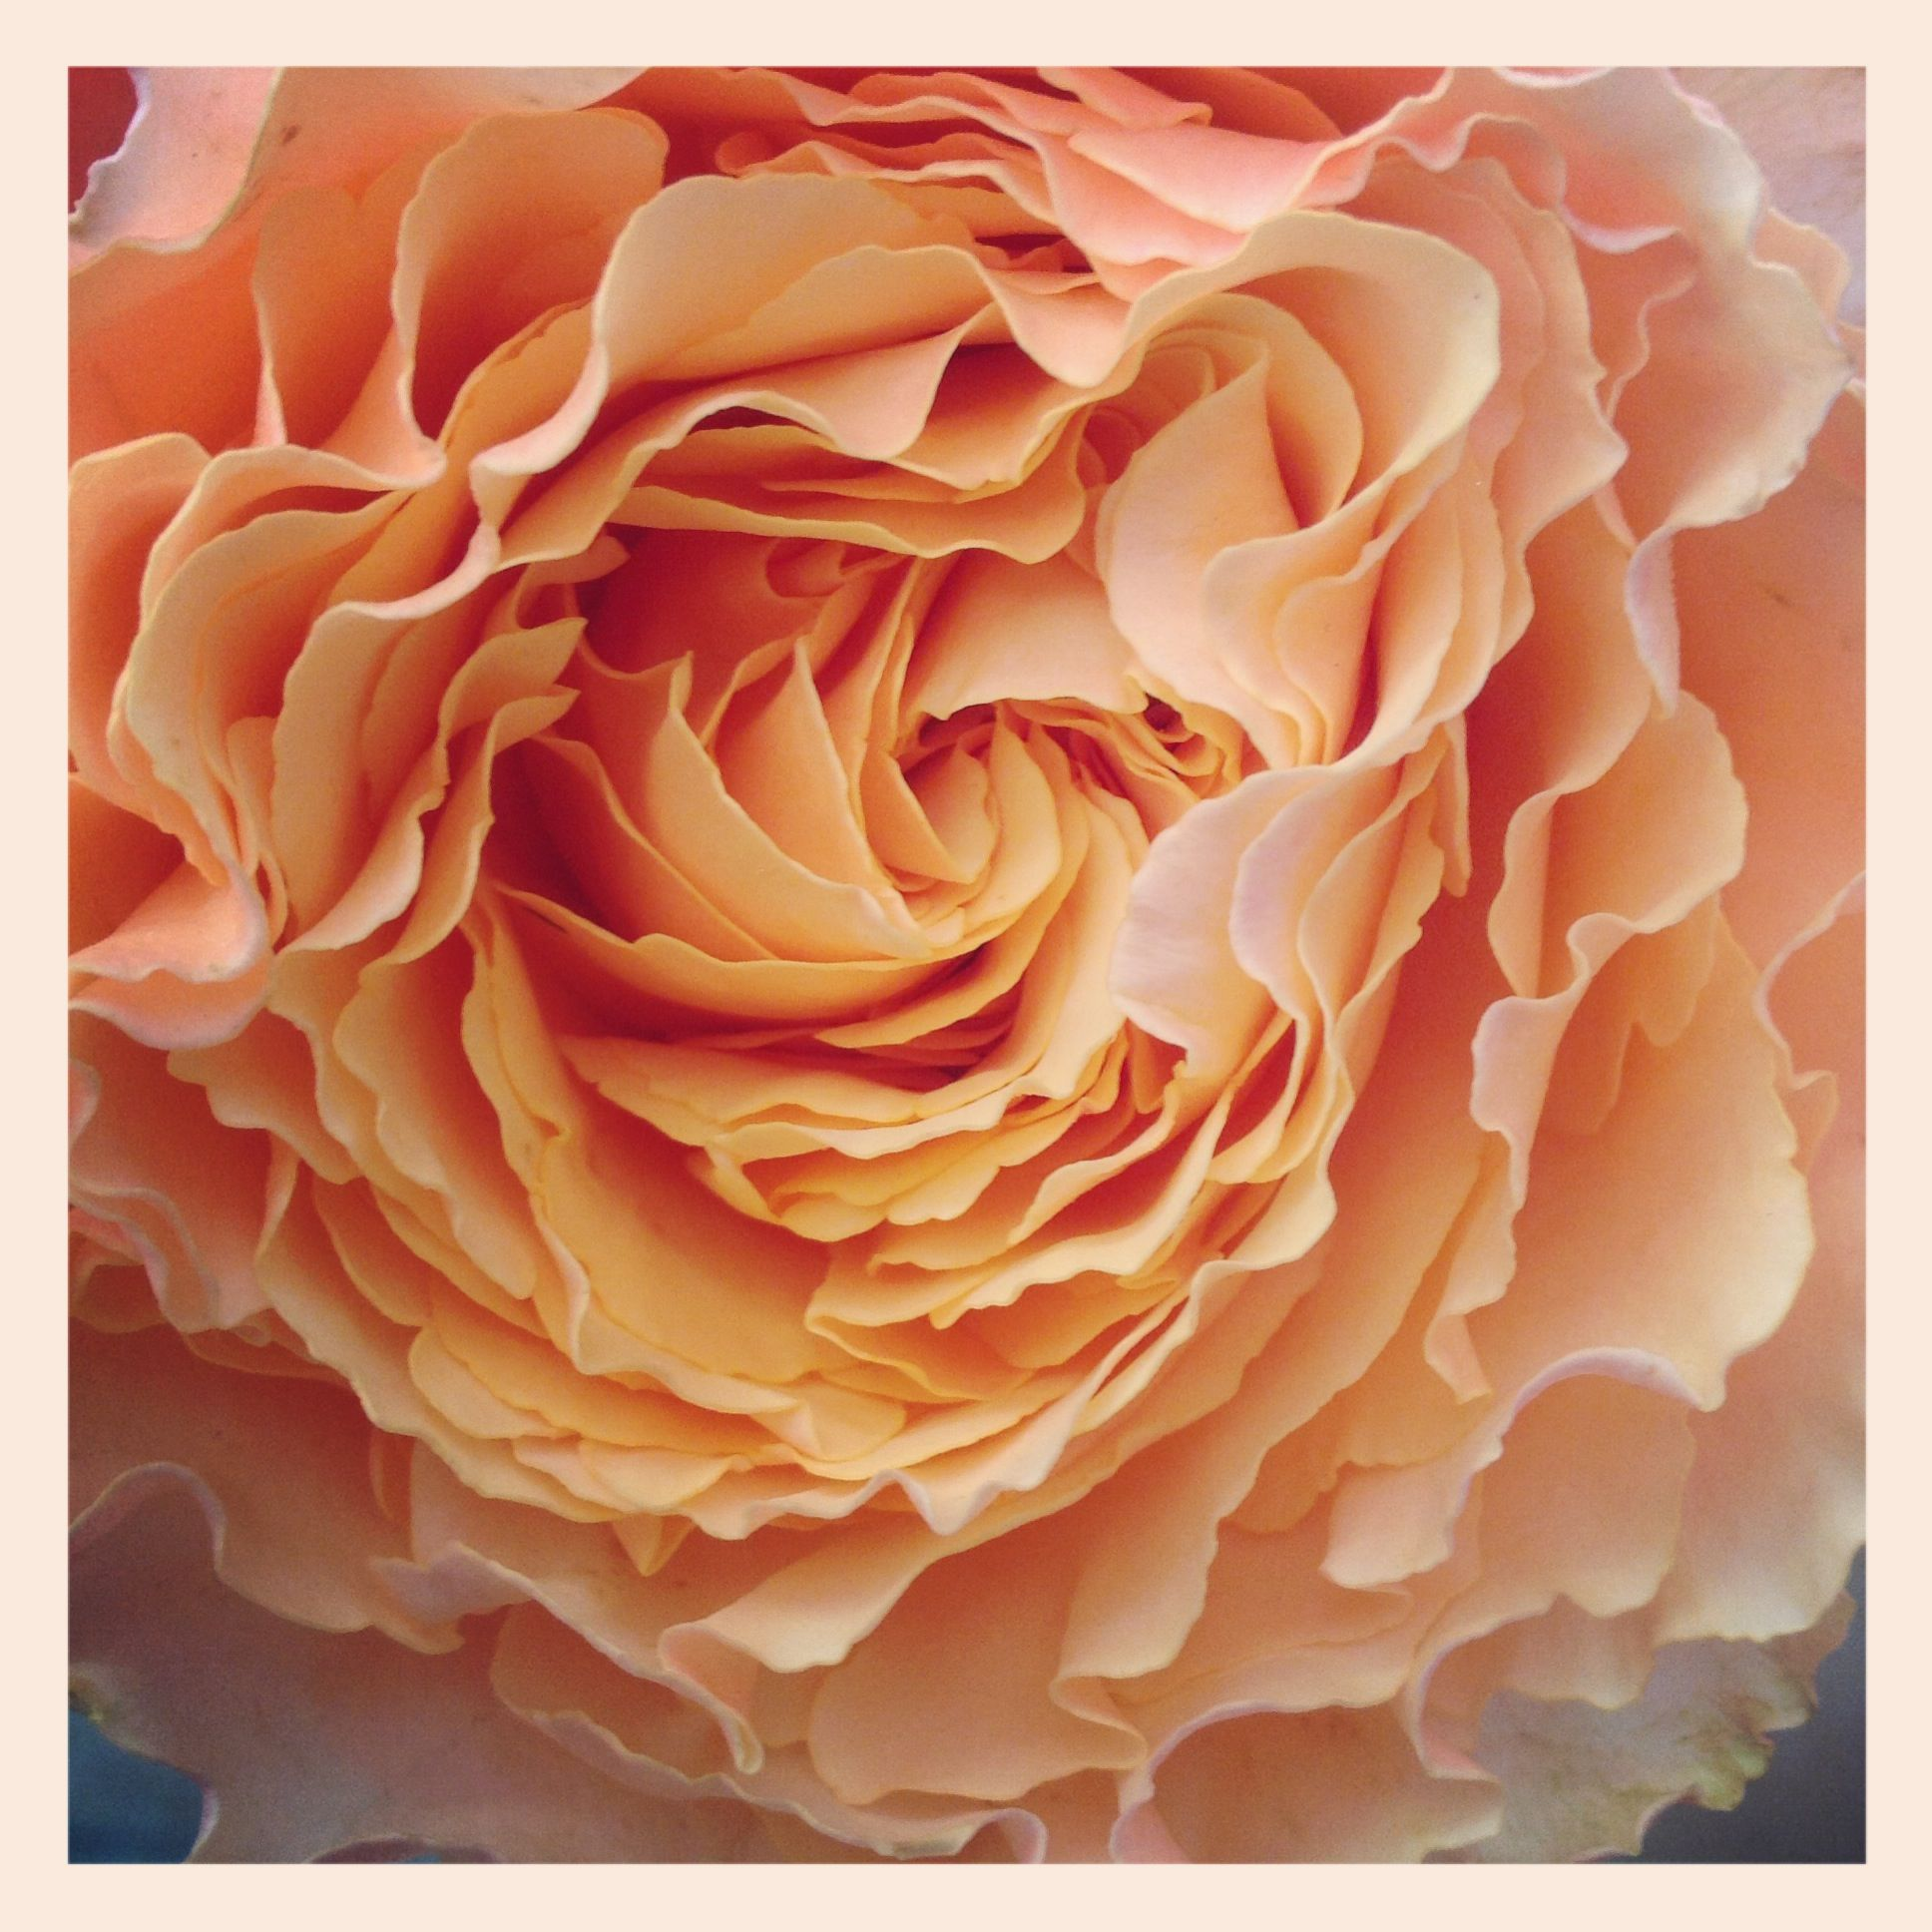 Free spirit rose (With images) Peach flowers, Free